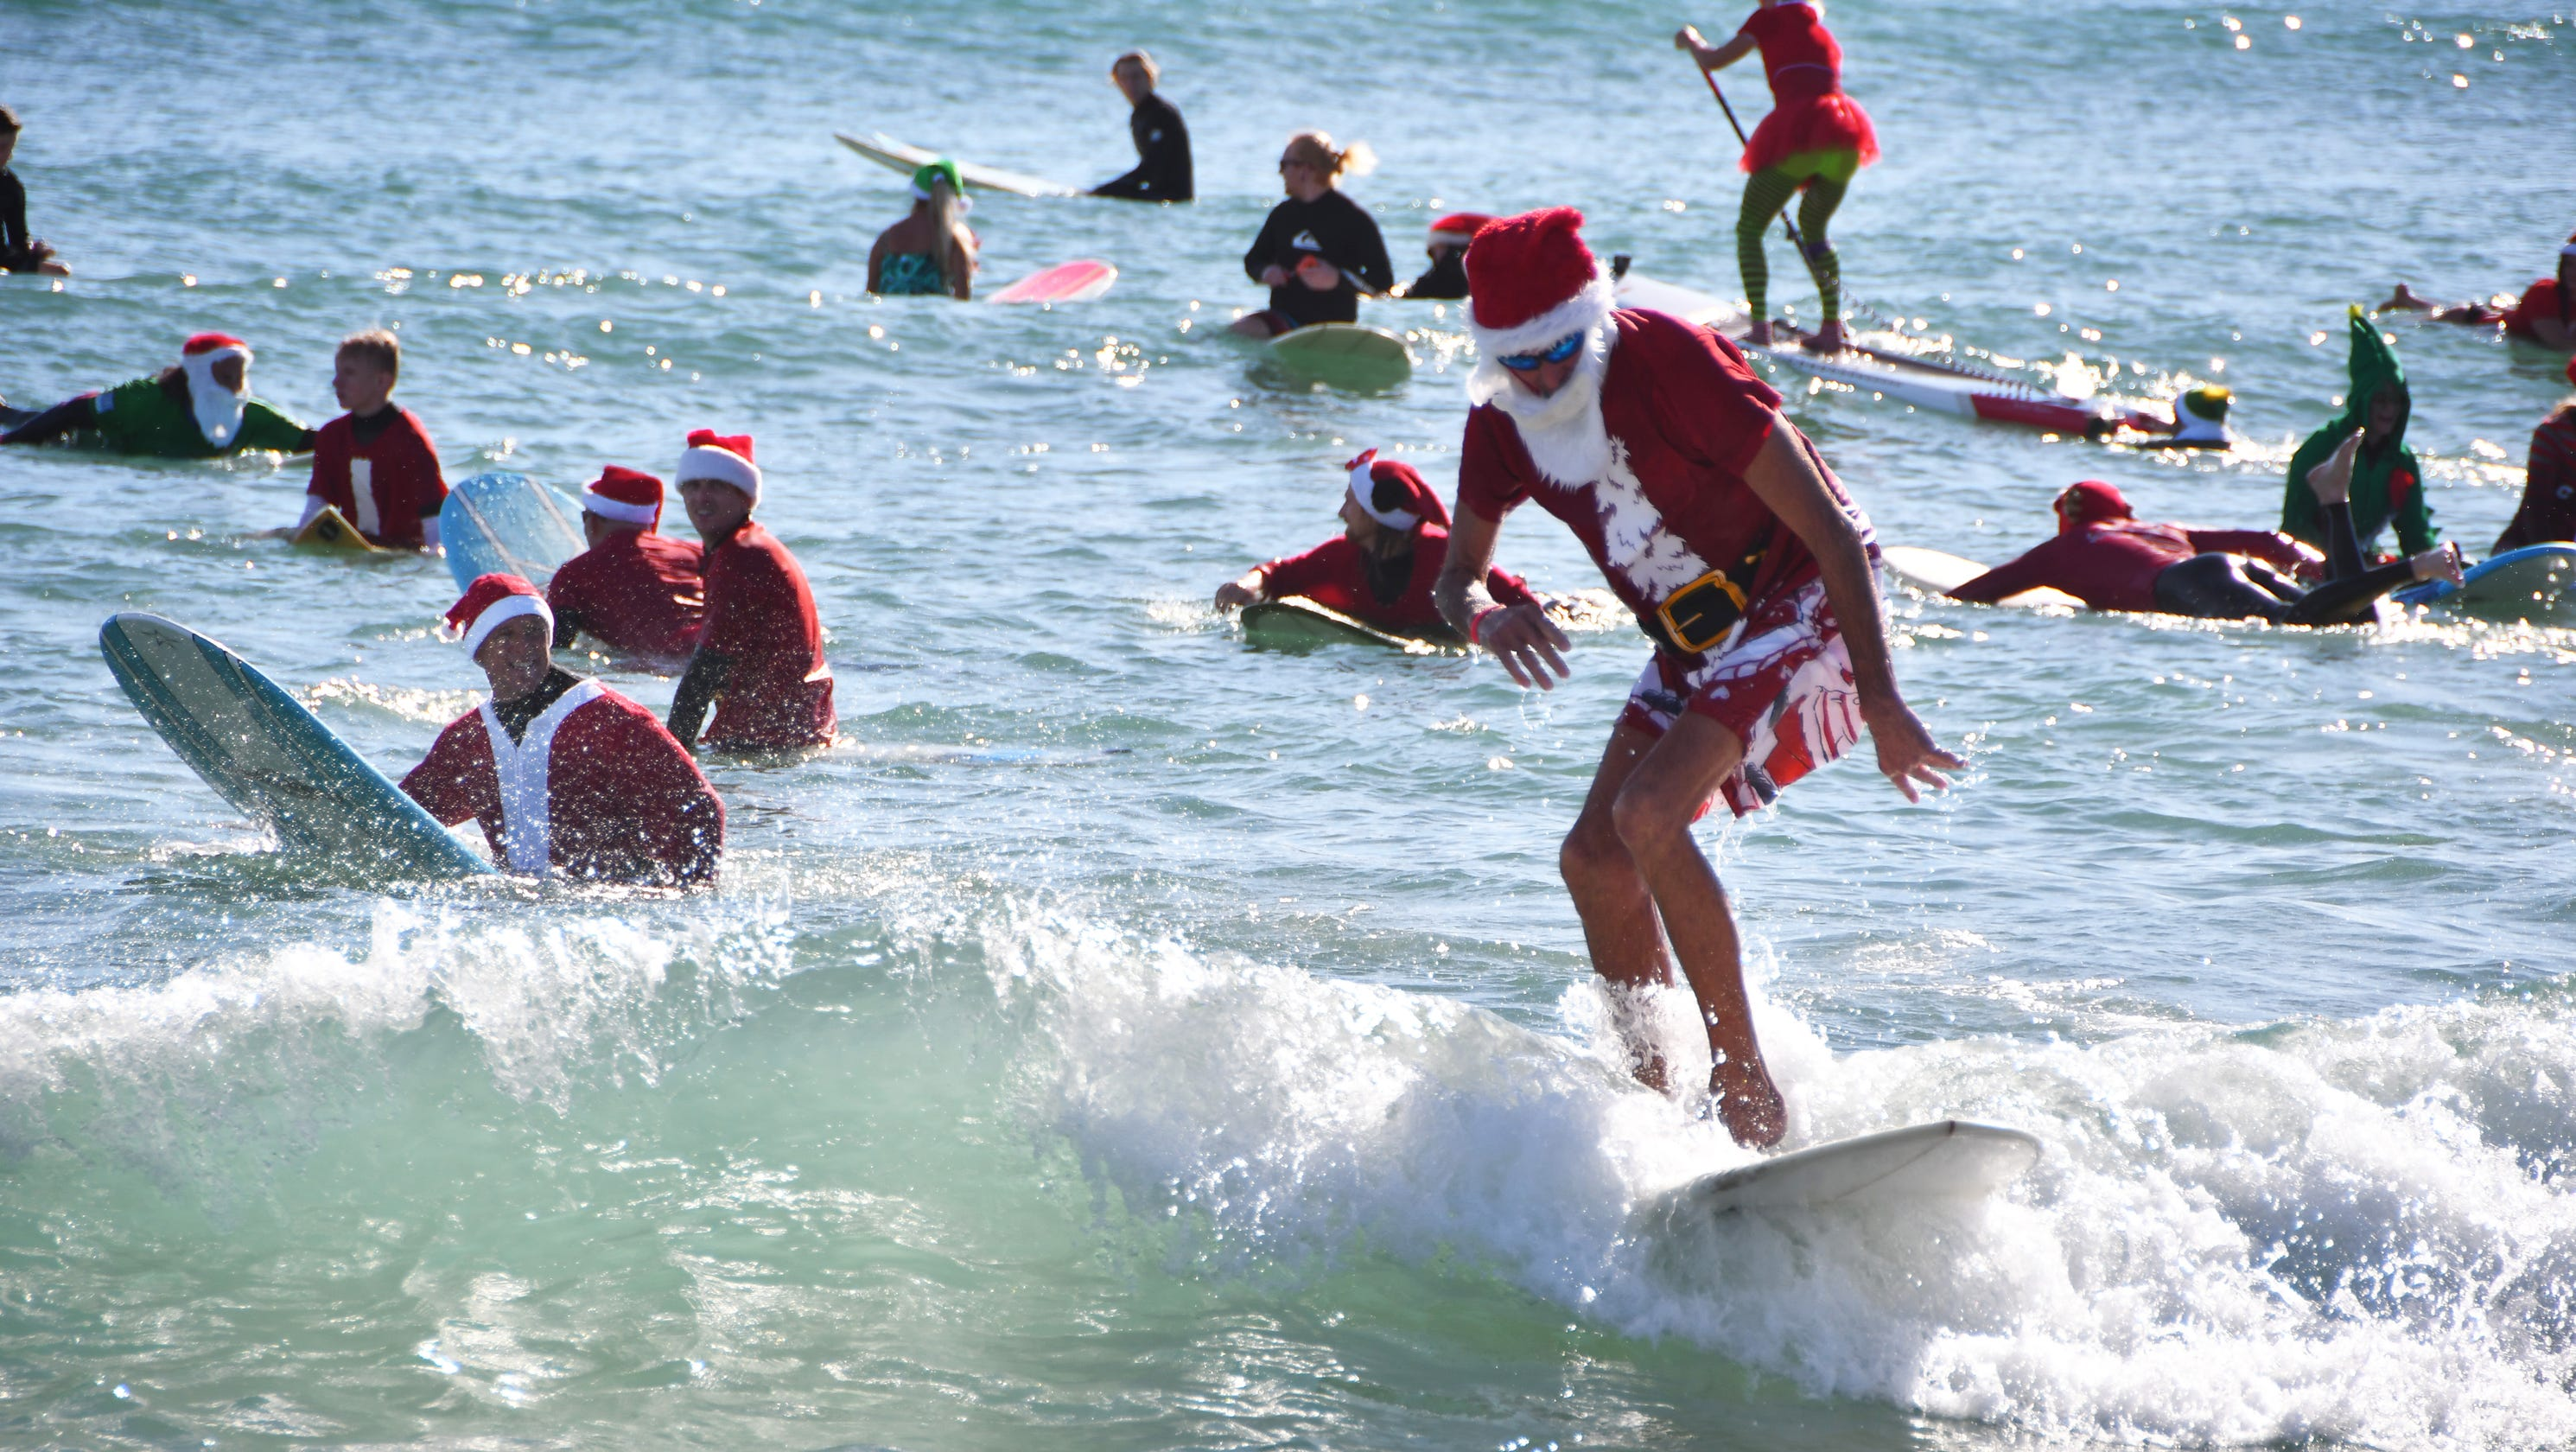 Christmas In Florida Images.Christmas In Florida Is Waves Of Fun And Holiday Cheer